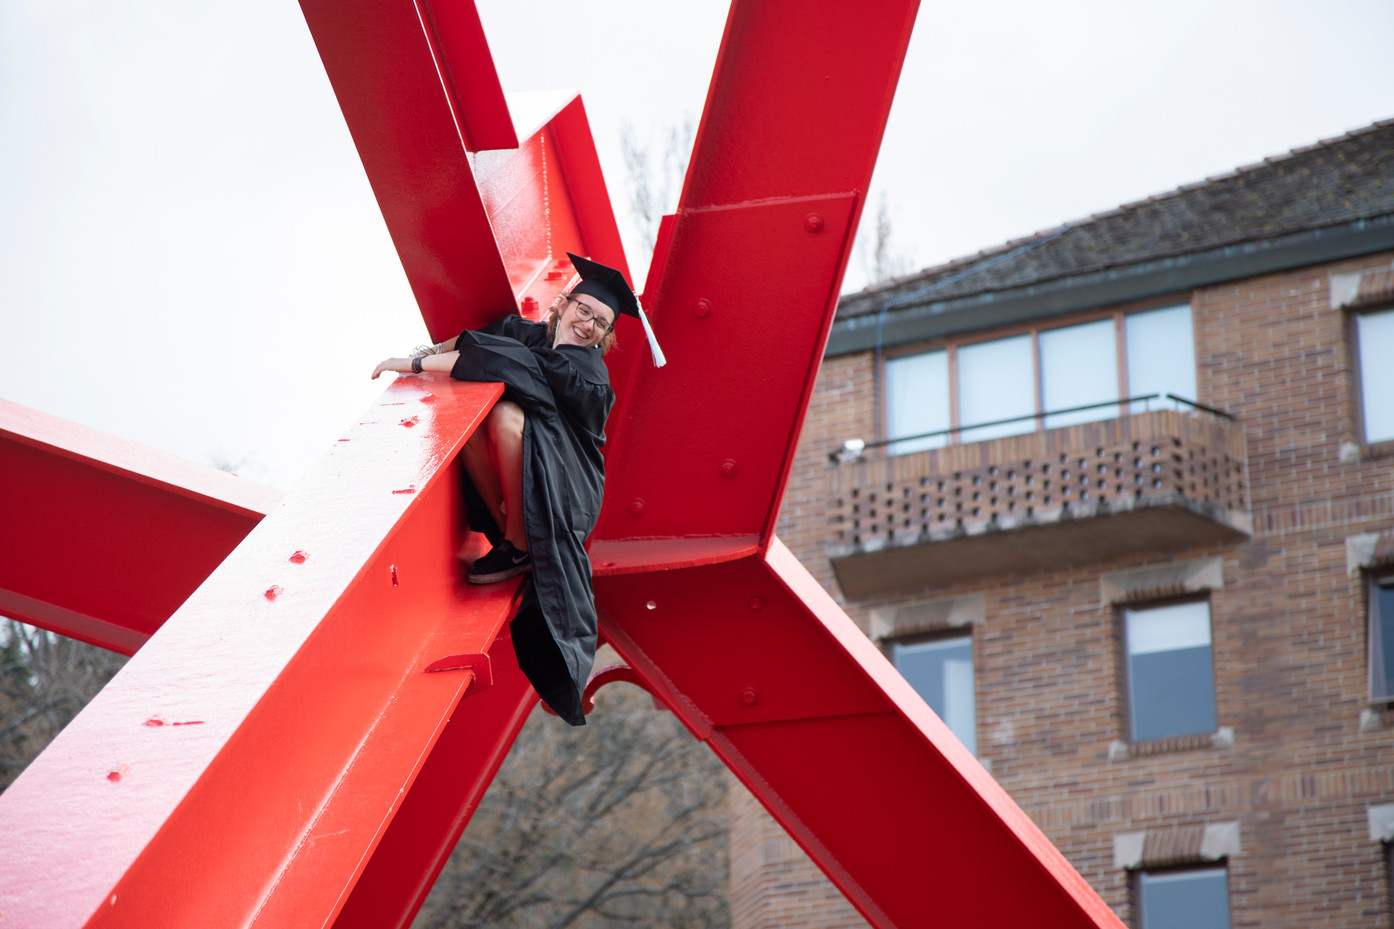 """Riley Marshall climbs the For Handel sculpture after graduating with a B.A. in Elementary Education at Western Washington University on Saturday, Mar. 23, 2019. The 15-foot sculpture, known as """"the Red Mosquito"""" by students, is a popular climbing obstacle despite the university's attempts to discourage the challenge of climbing the 20-foot metal sculpture. (The Western Front)"""